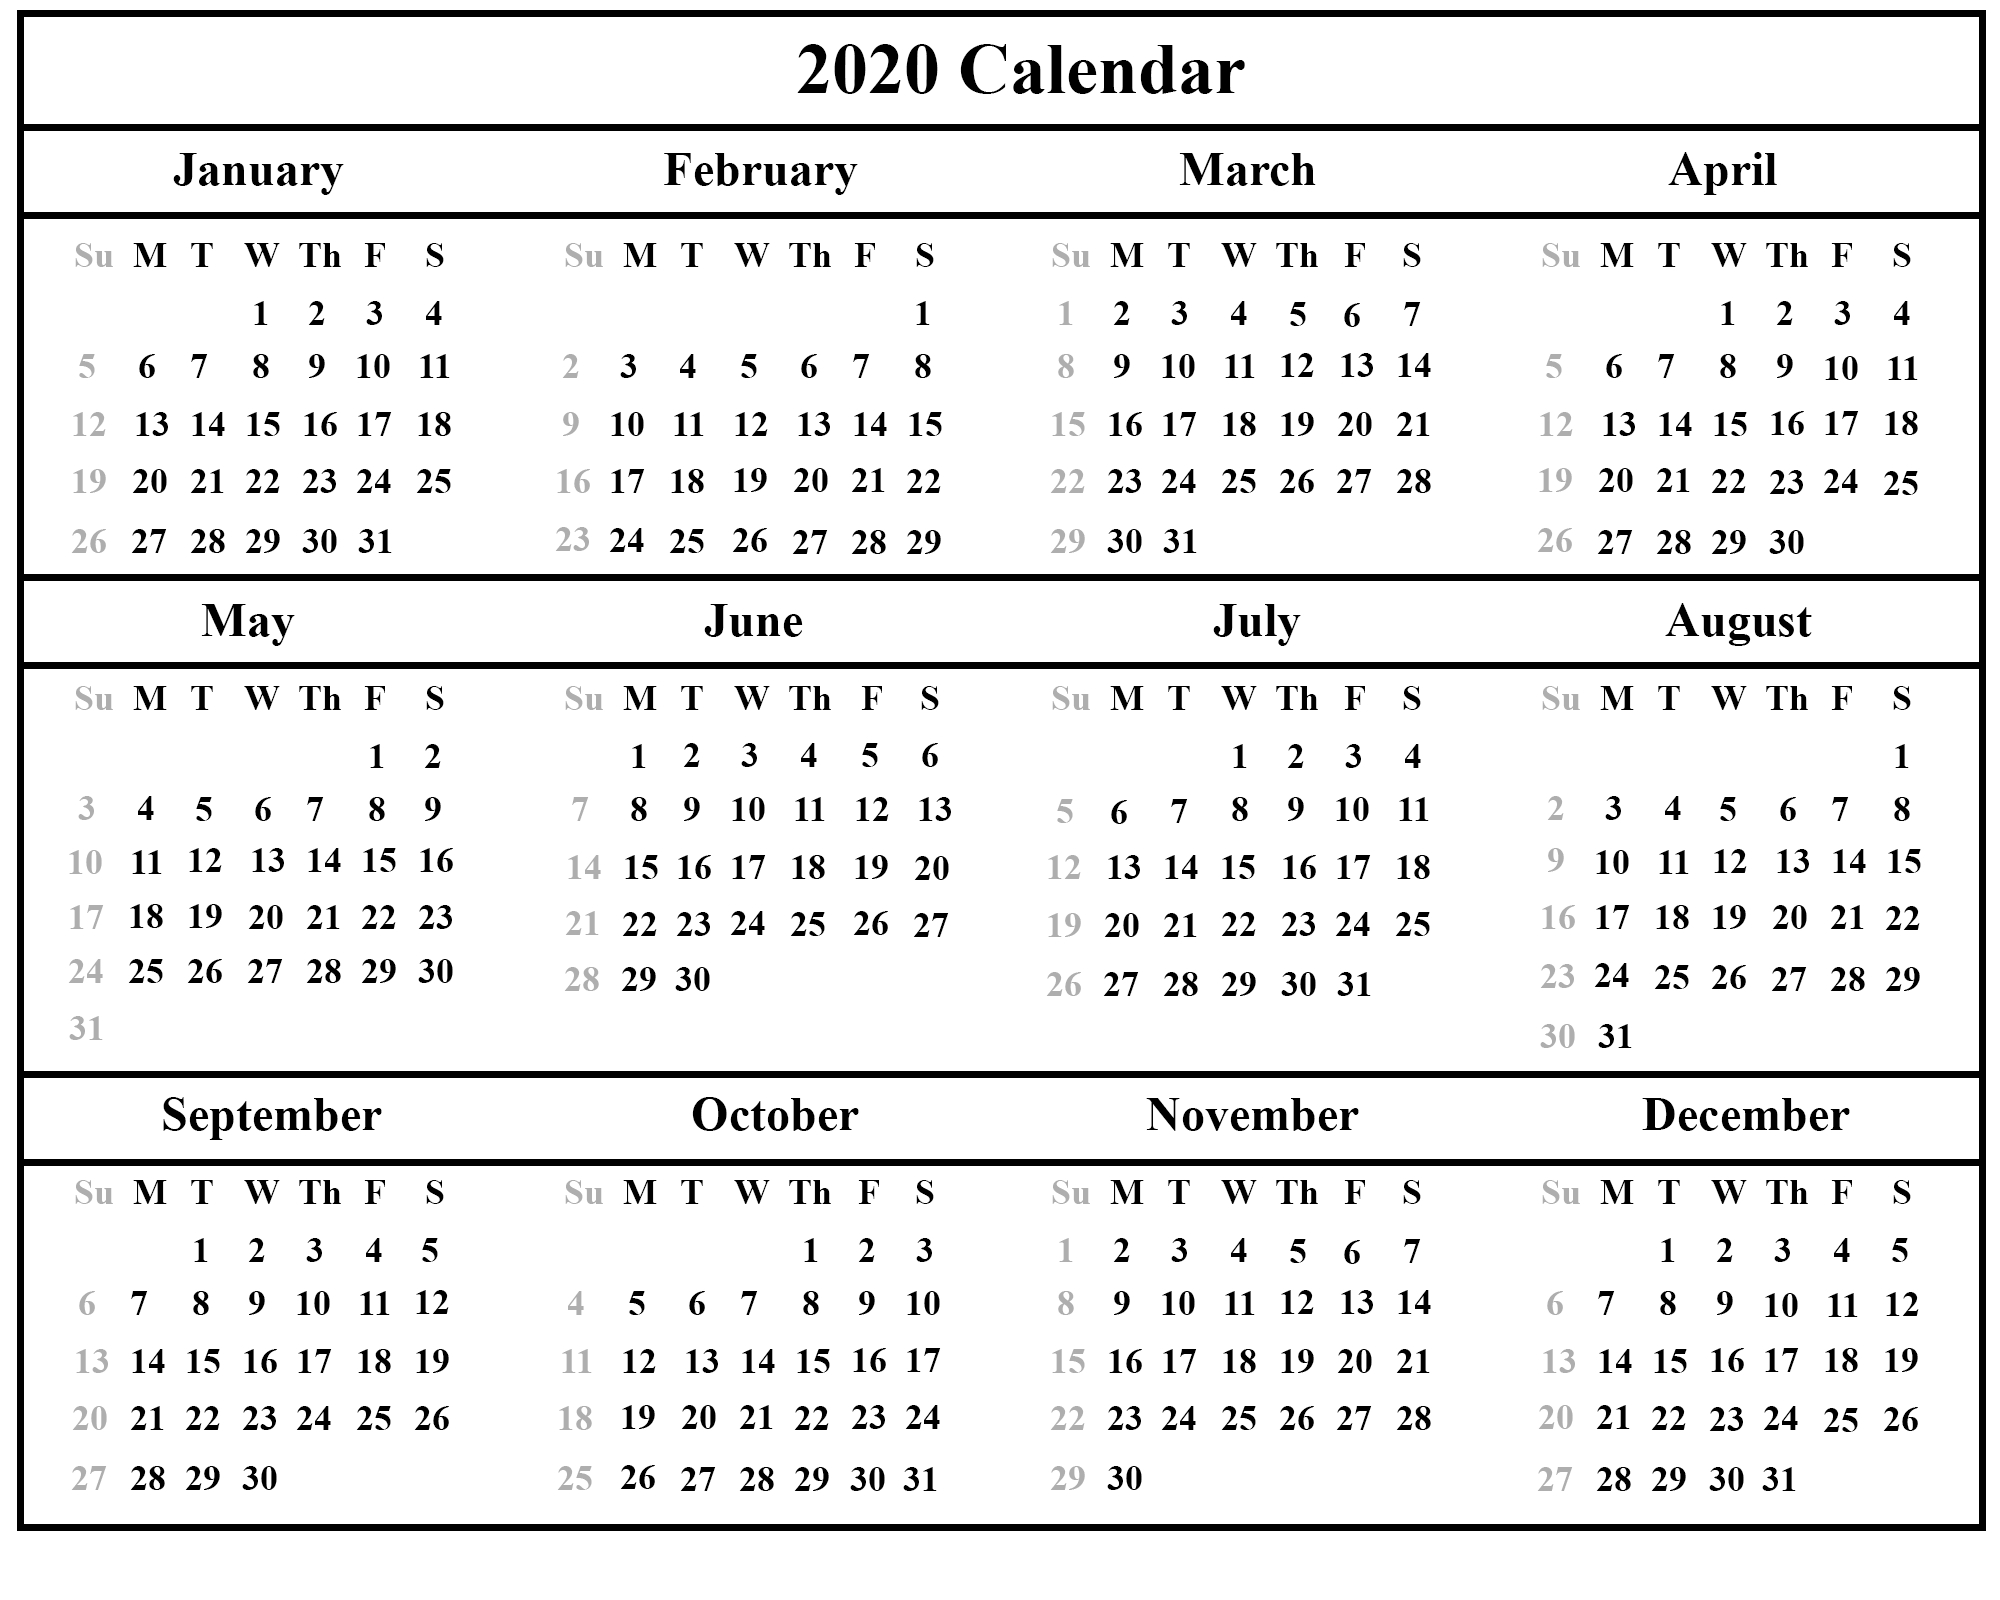 😄switzerland Calendar 2020 Template Pdf, Excel, Word-Printable Calendar 2020 With Bank Holidays